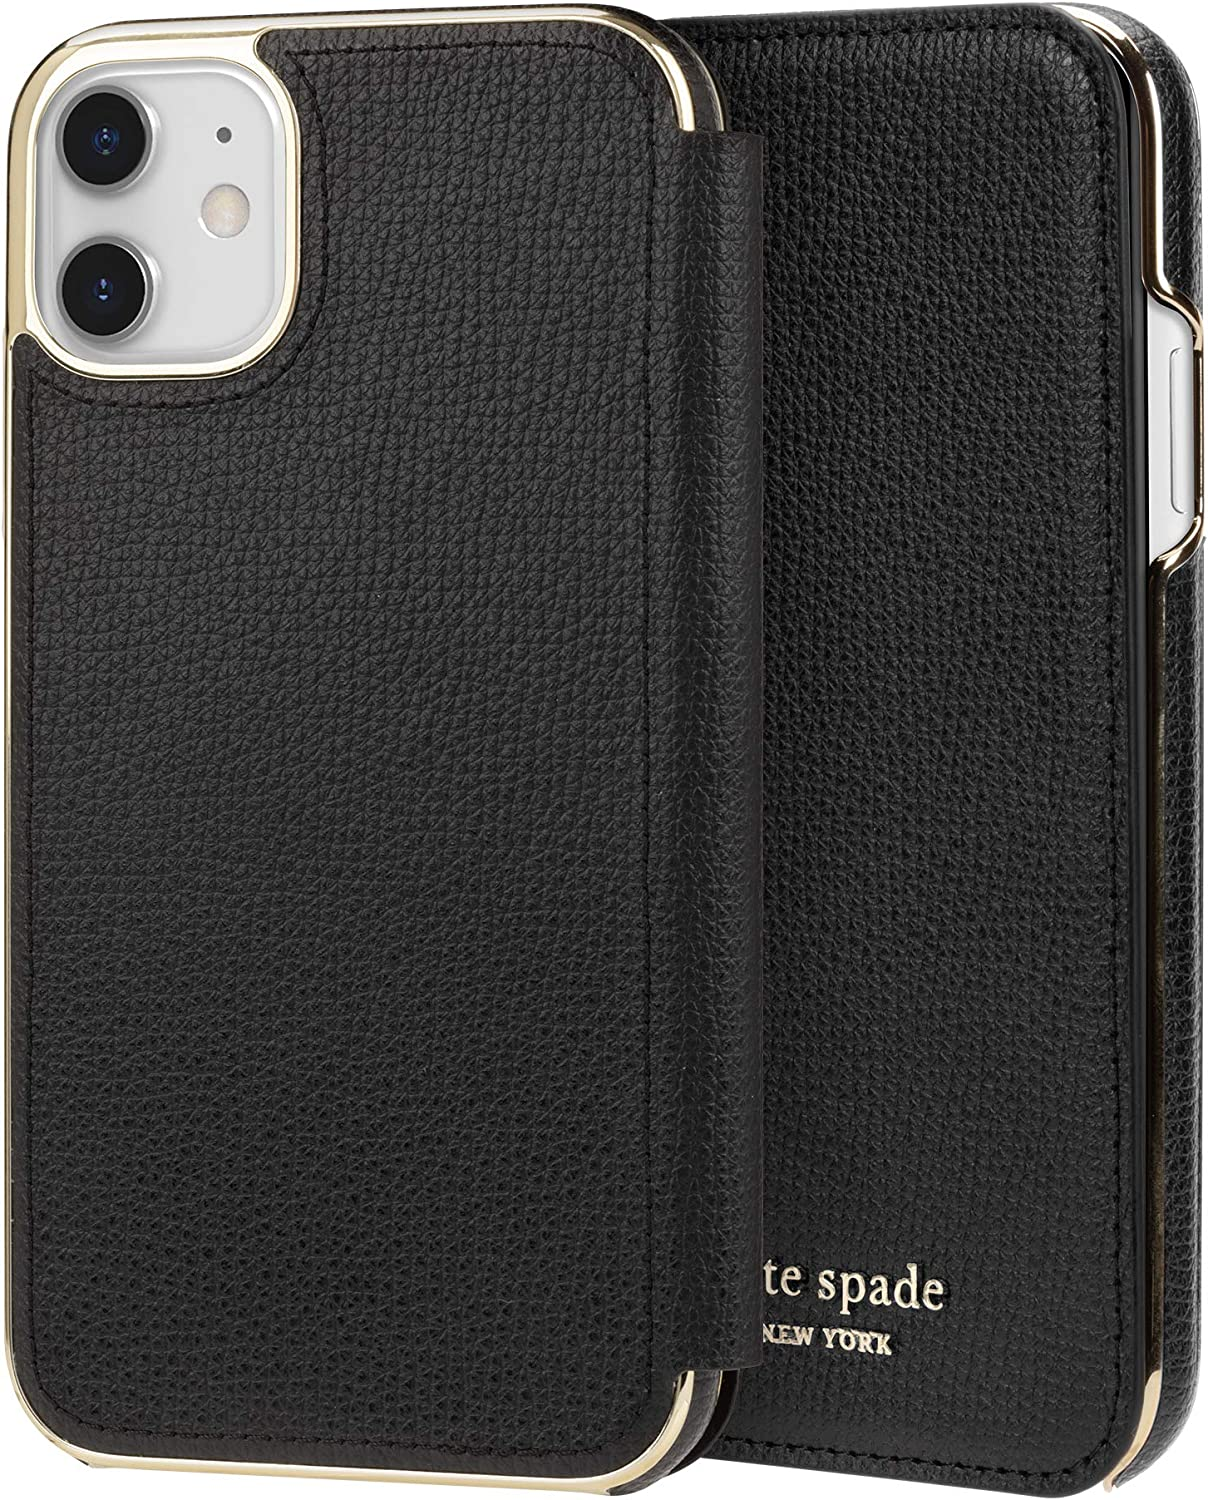 kate spade new york Black Folio Case for iPhone 11 - ID & Card Holder